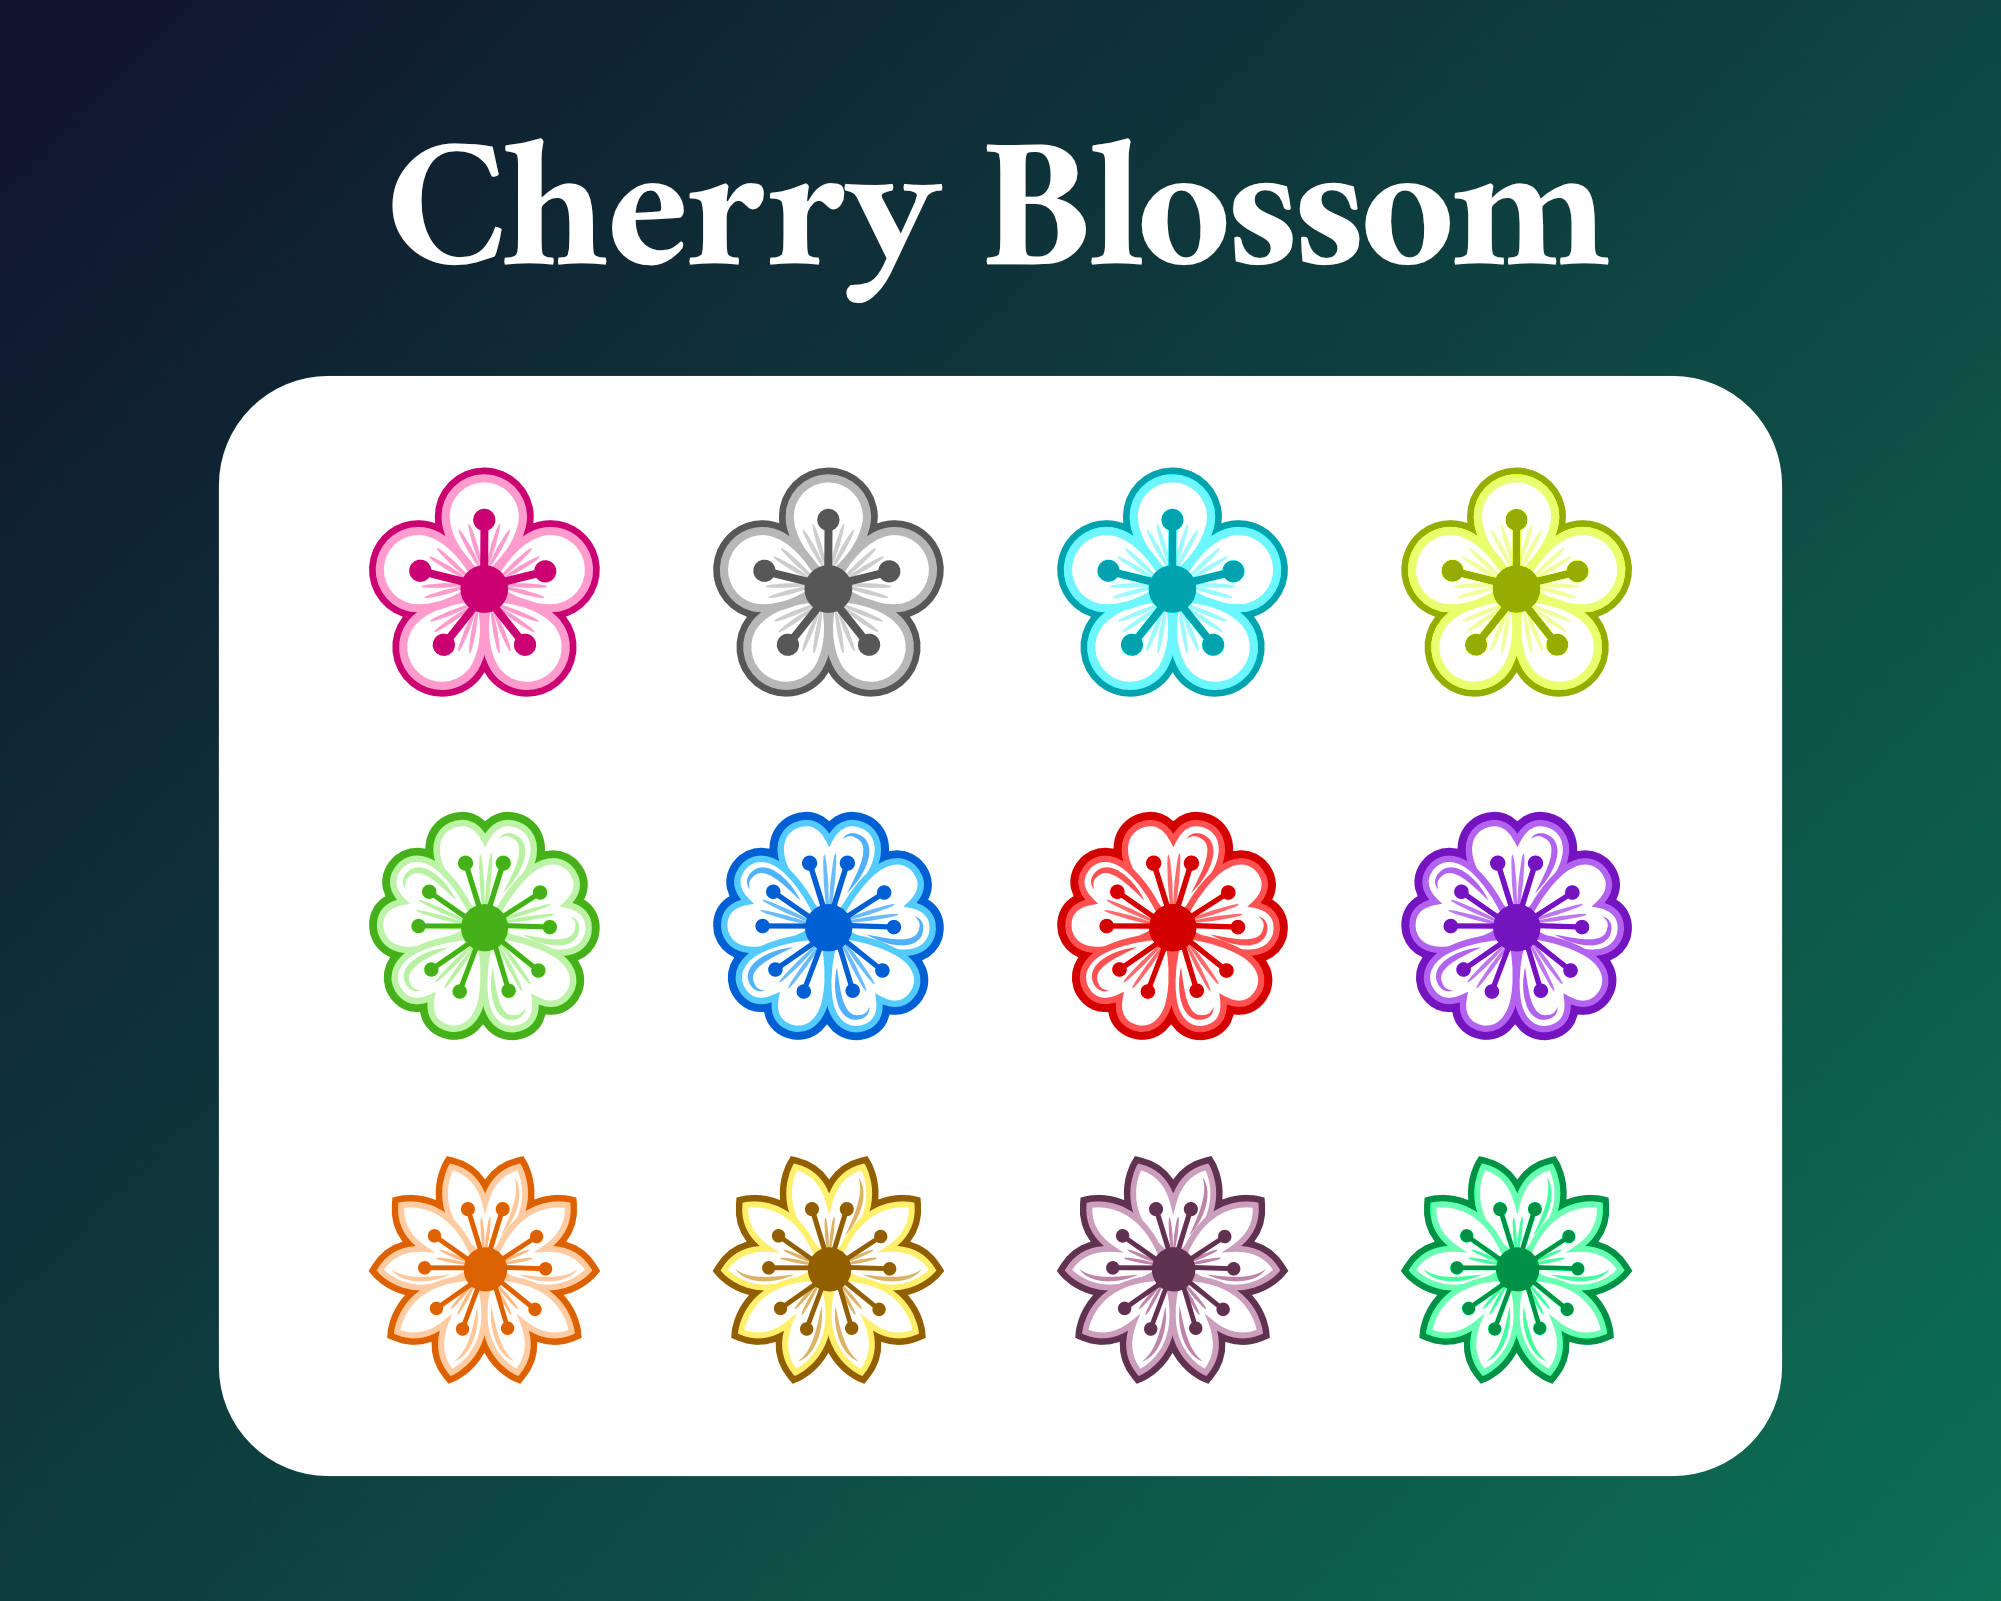 Cherry Blossom Sub Badges For Twitch